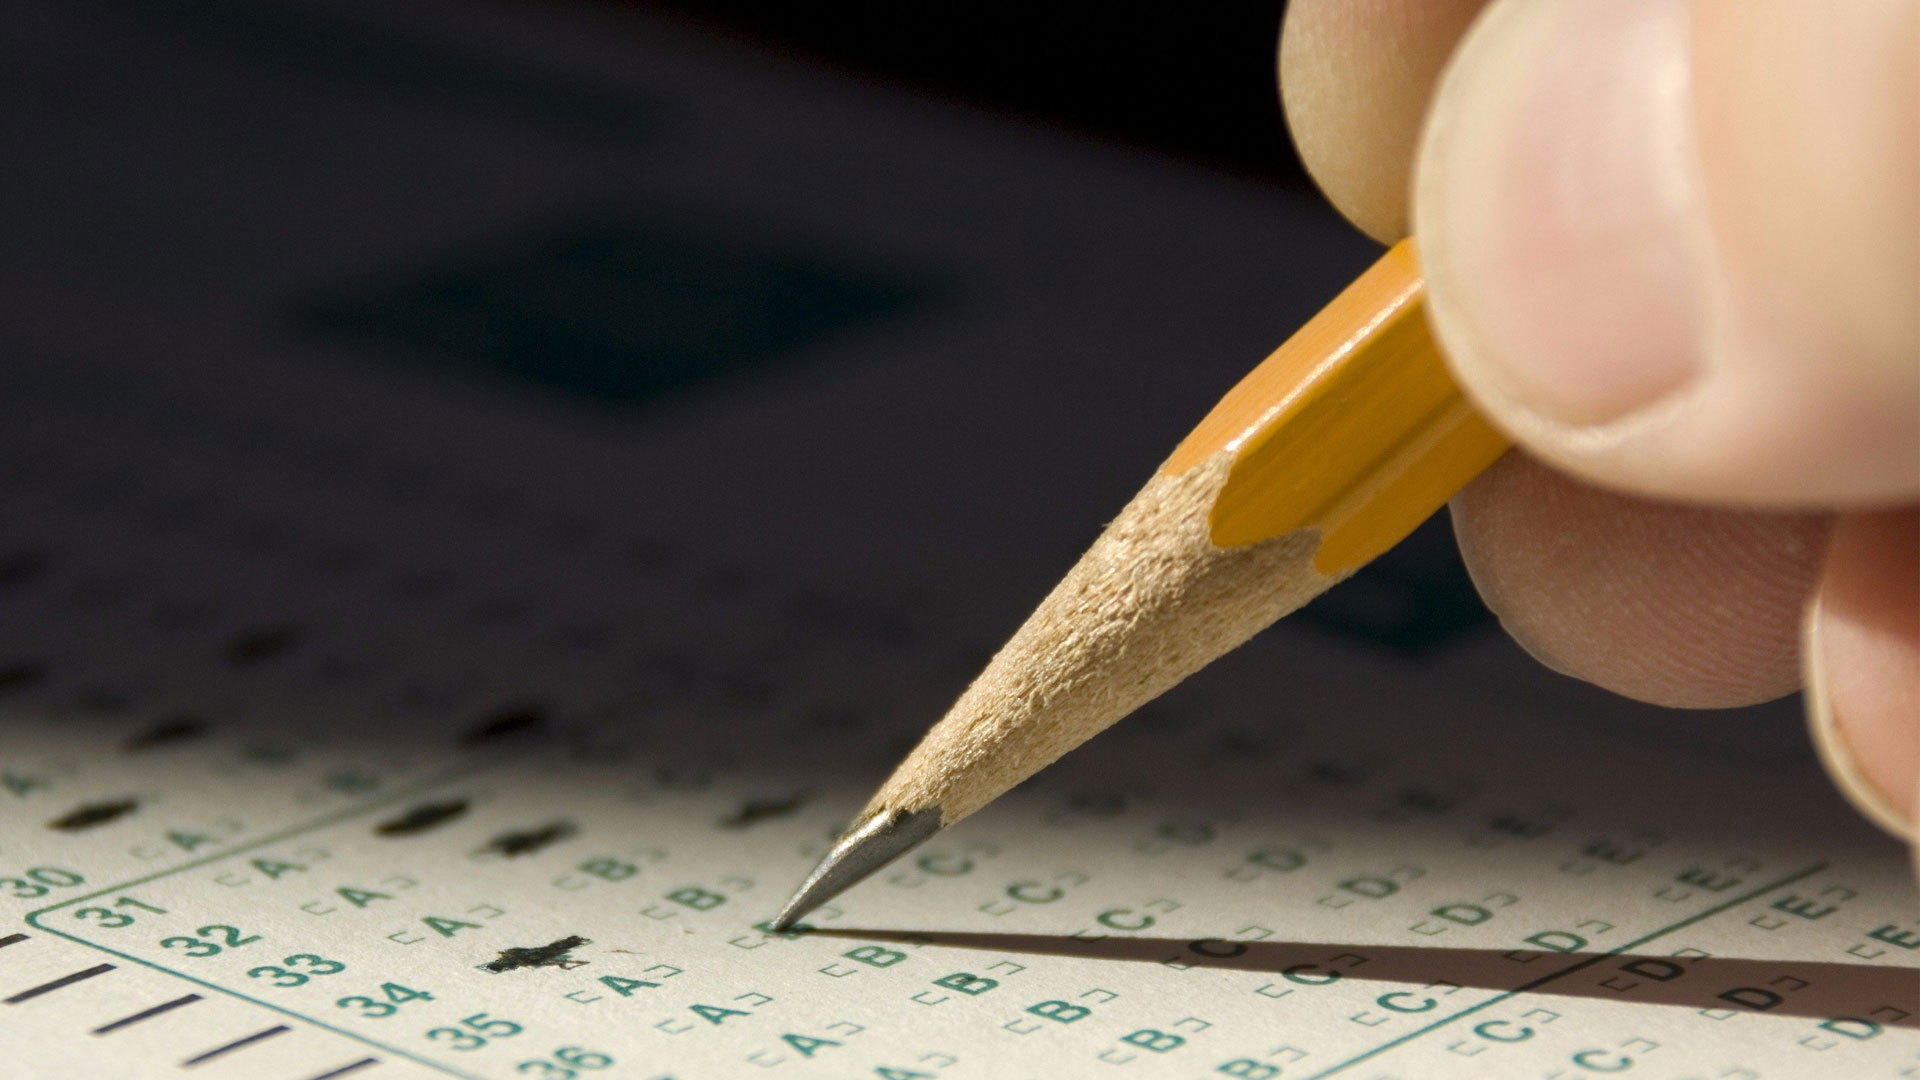 taking a test with a pencil